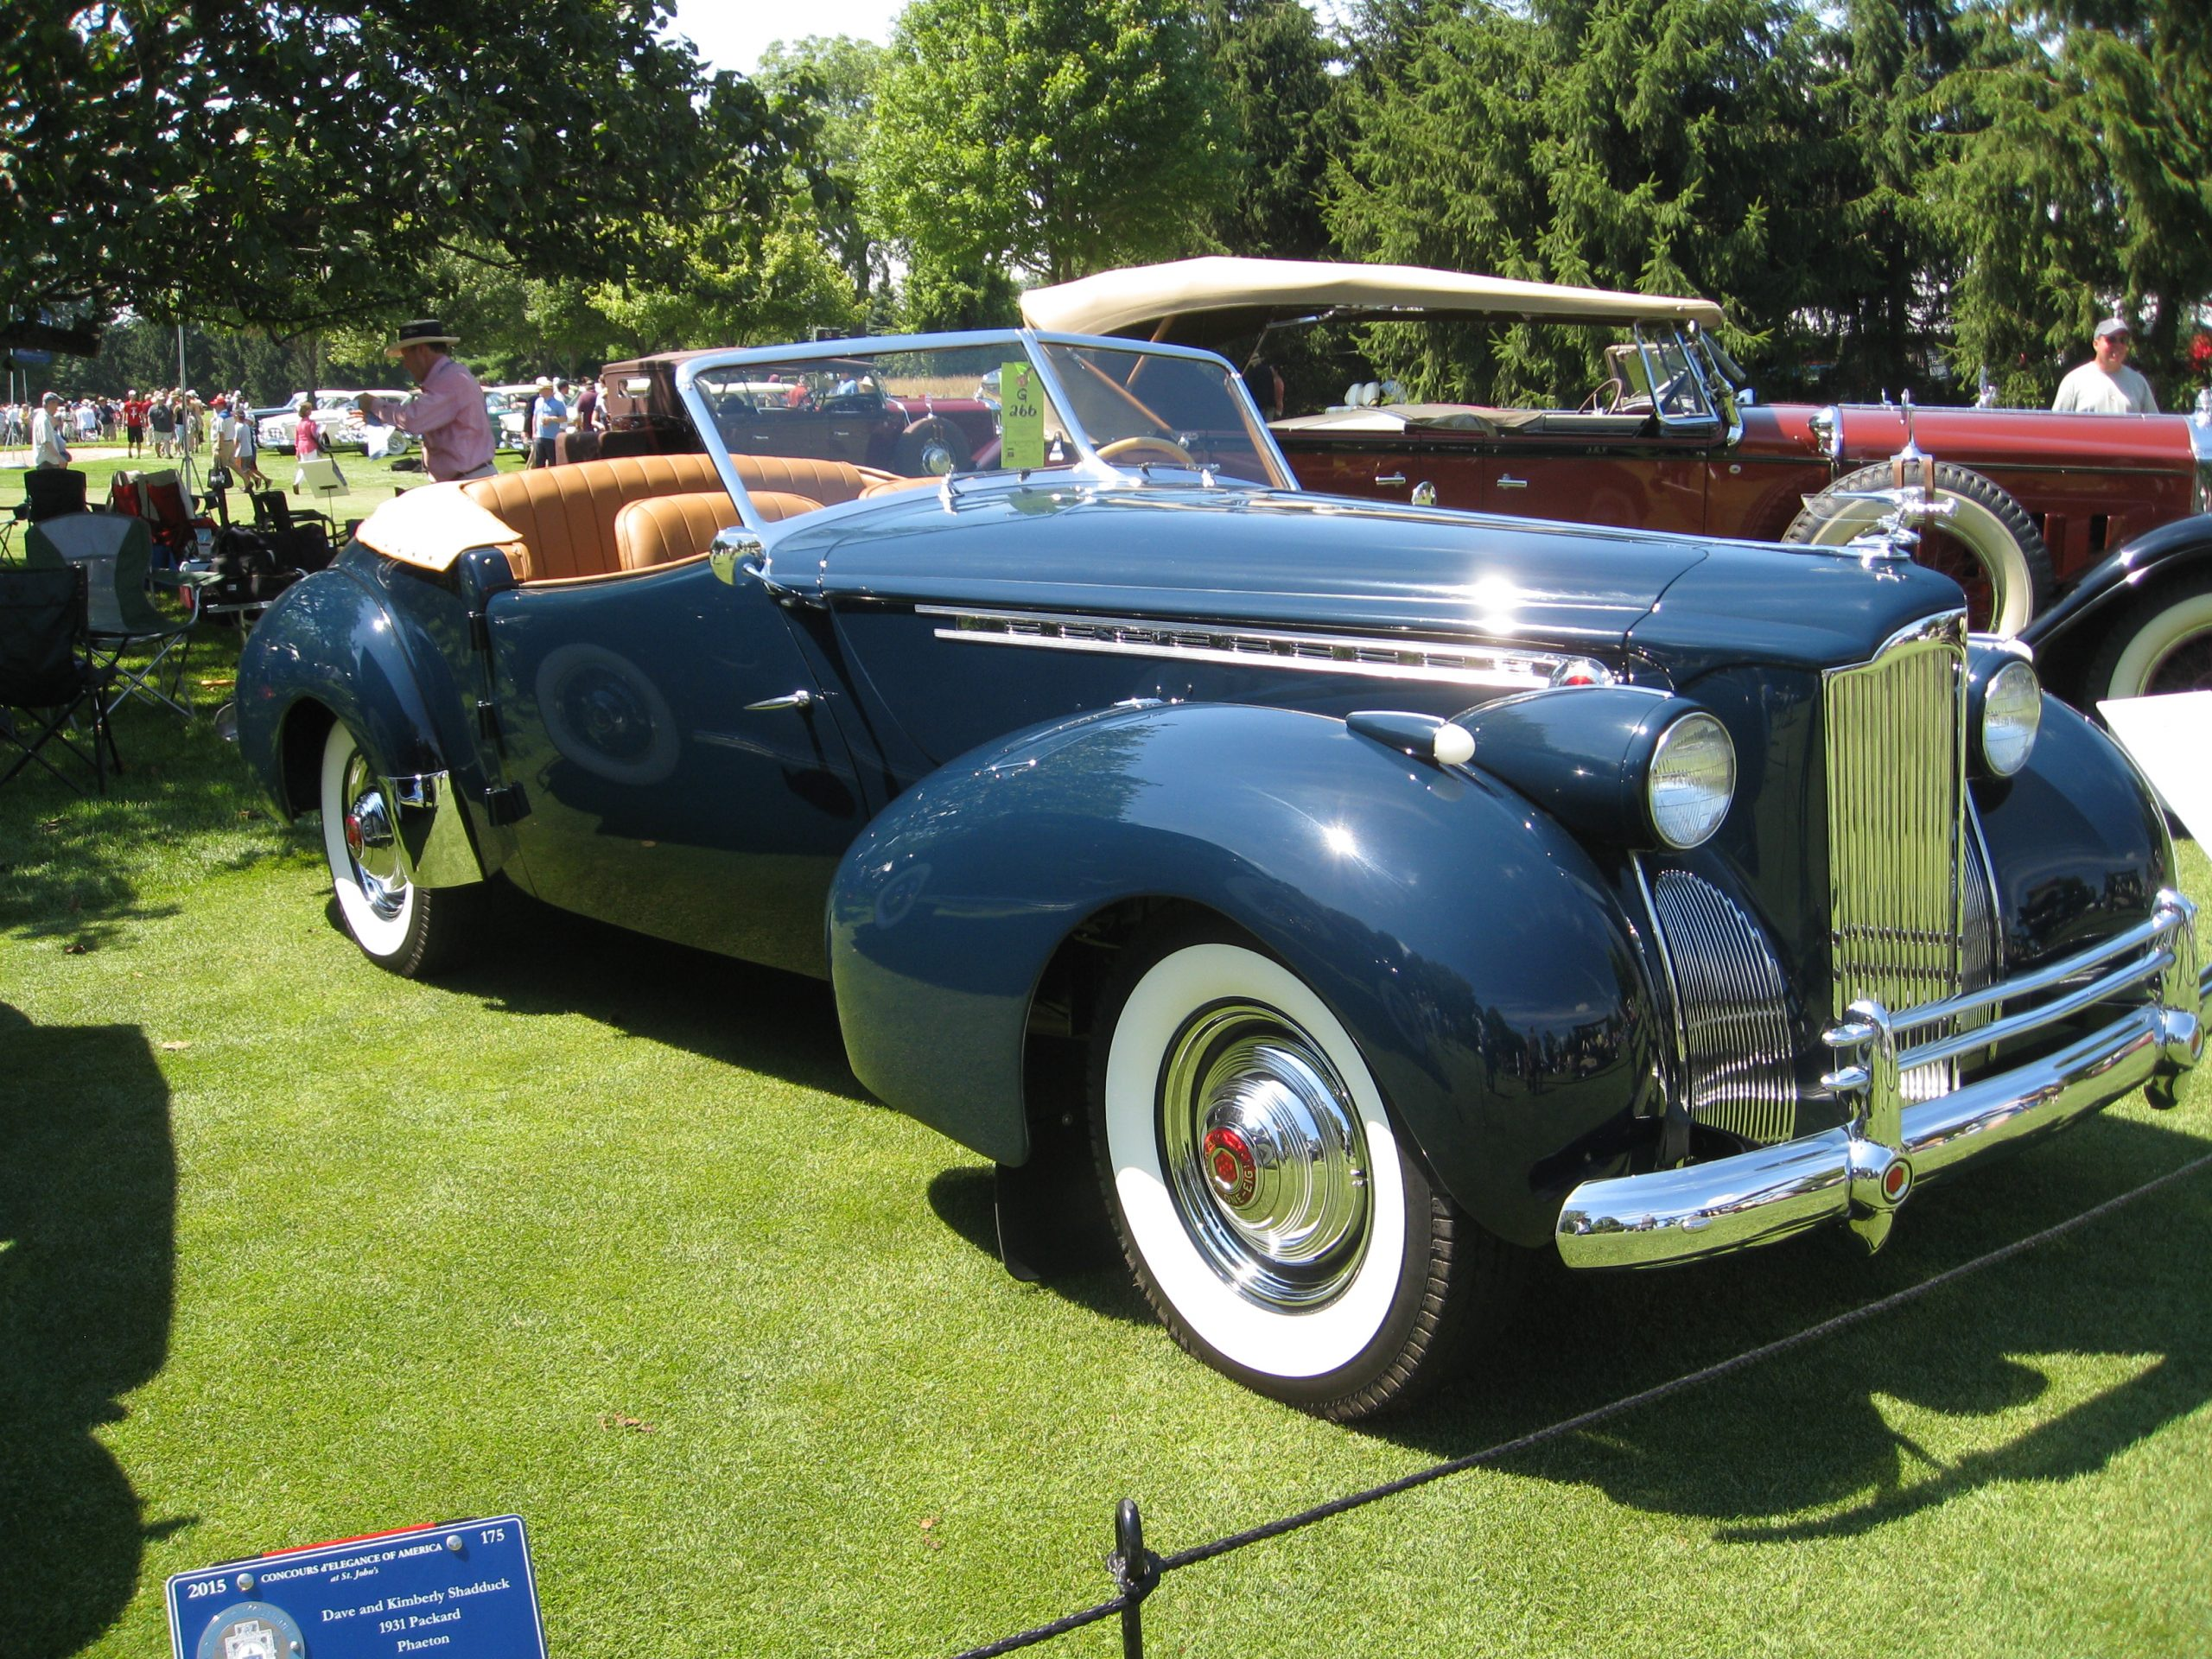 2015 Concours d'Elegance of America